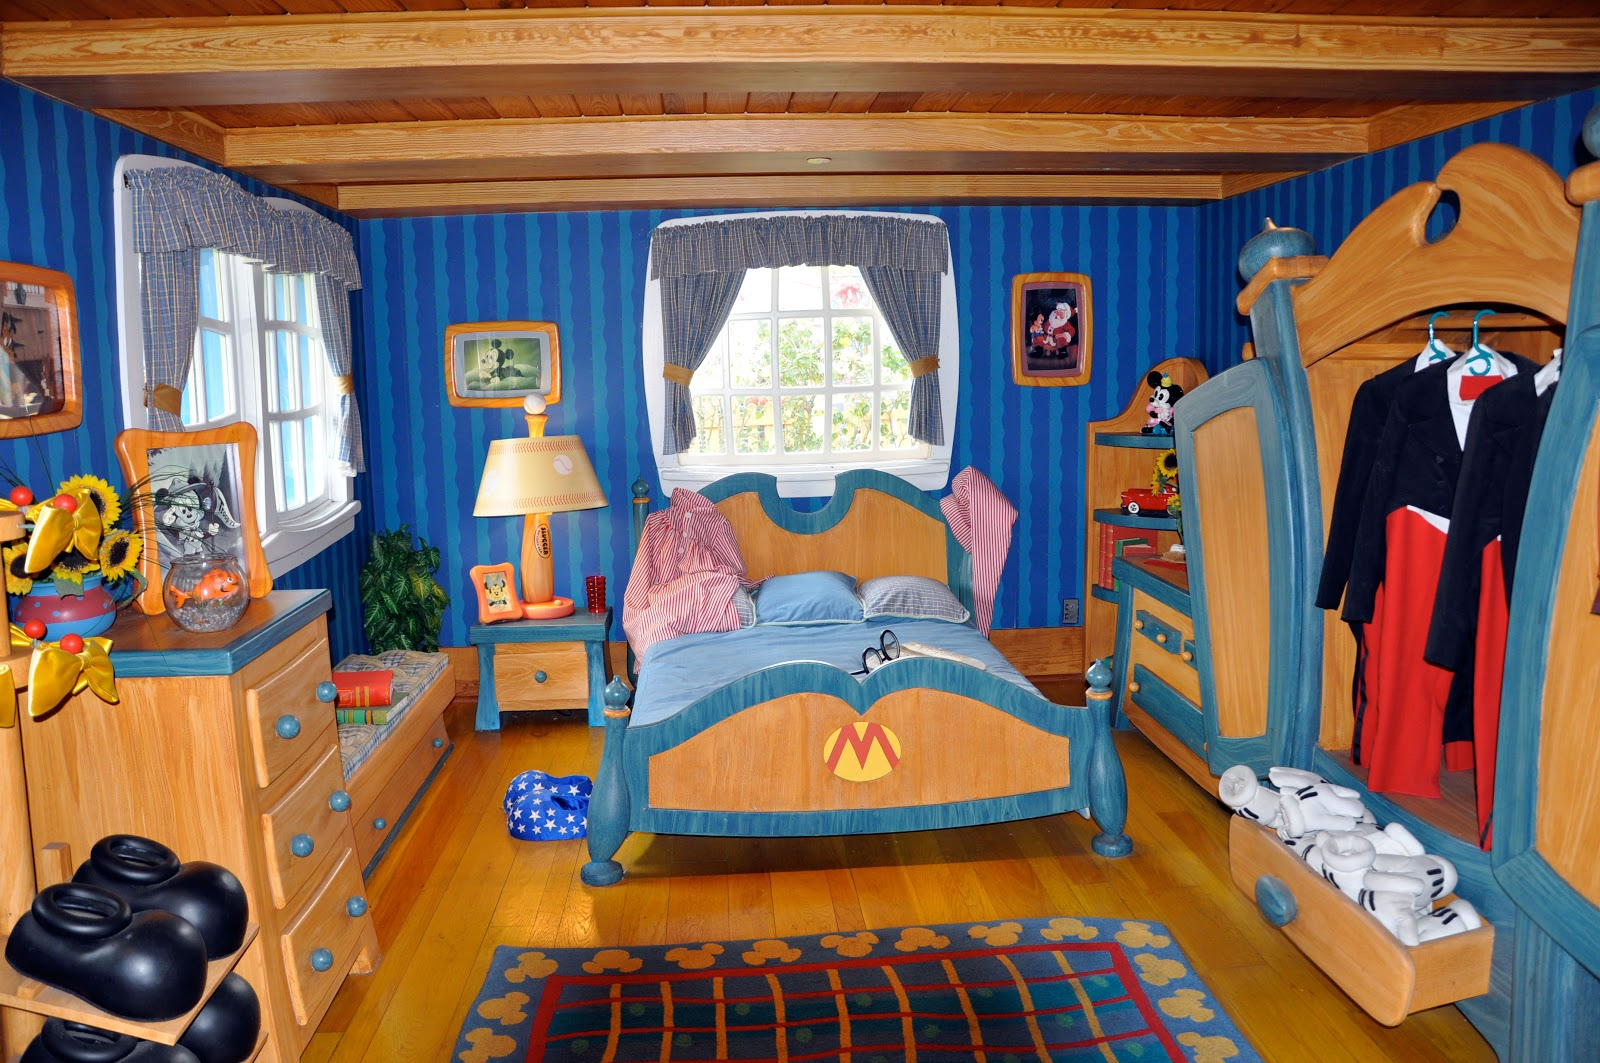 Smile of The Day: Inside Mickey Mouse's house